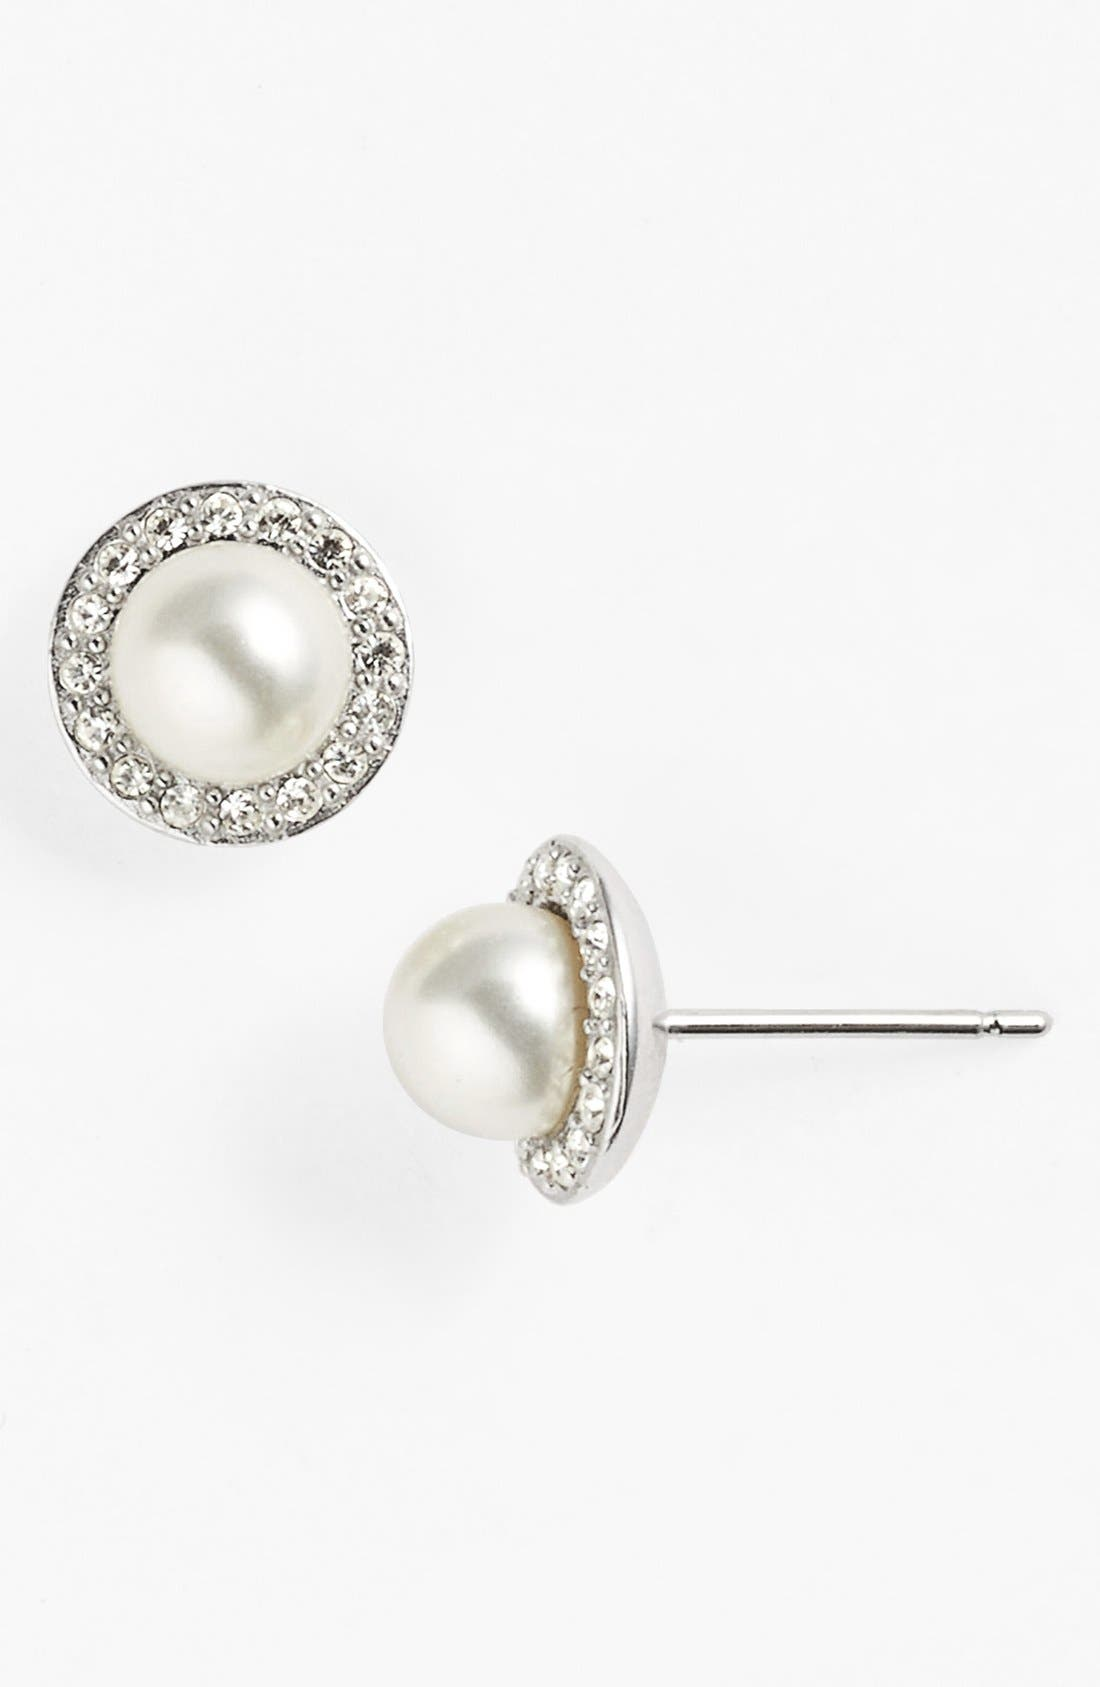 Main Image - Judith Jack 'Pearl Romance' Faux Pearl Stud Earrings